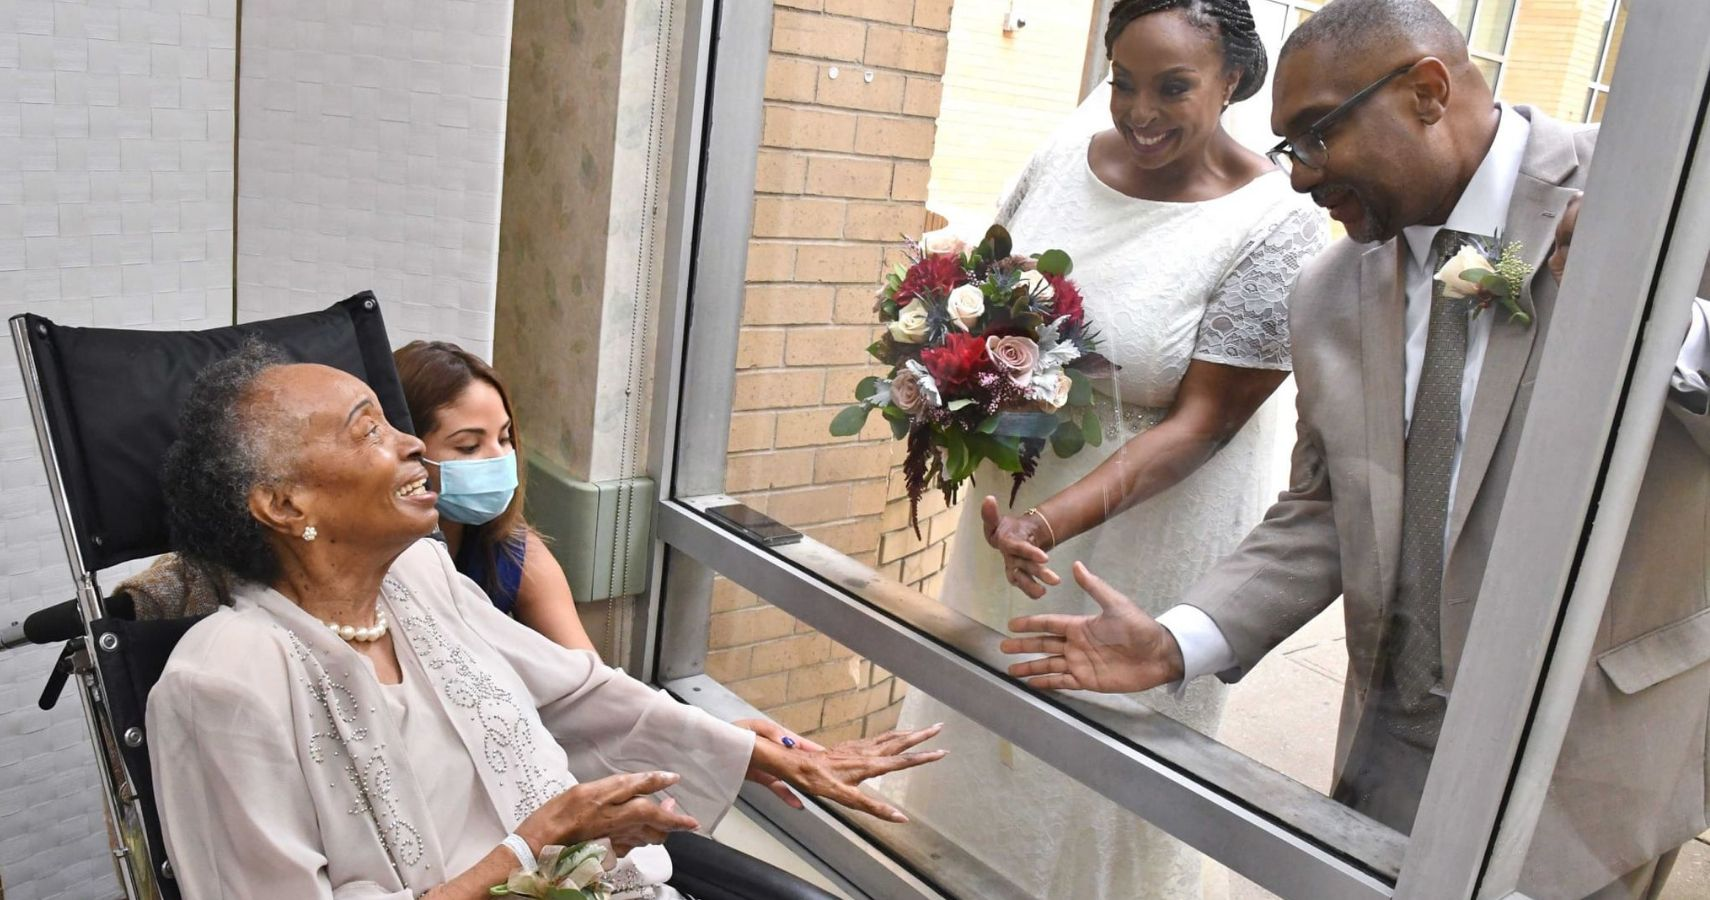 Couple Gets Married In Courtyard Outside Mom's Window | Moms.com